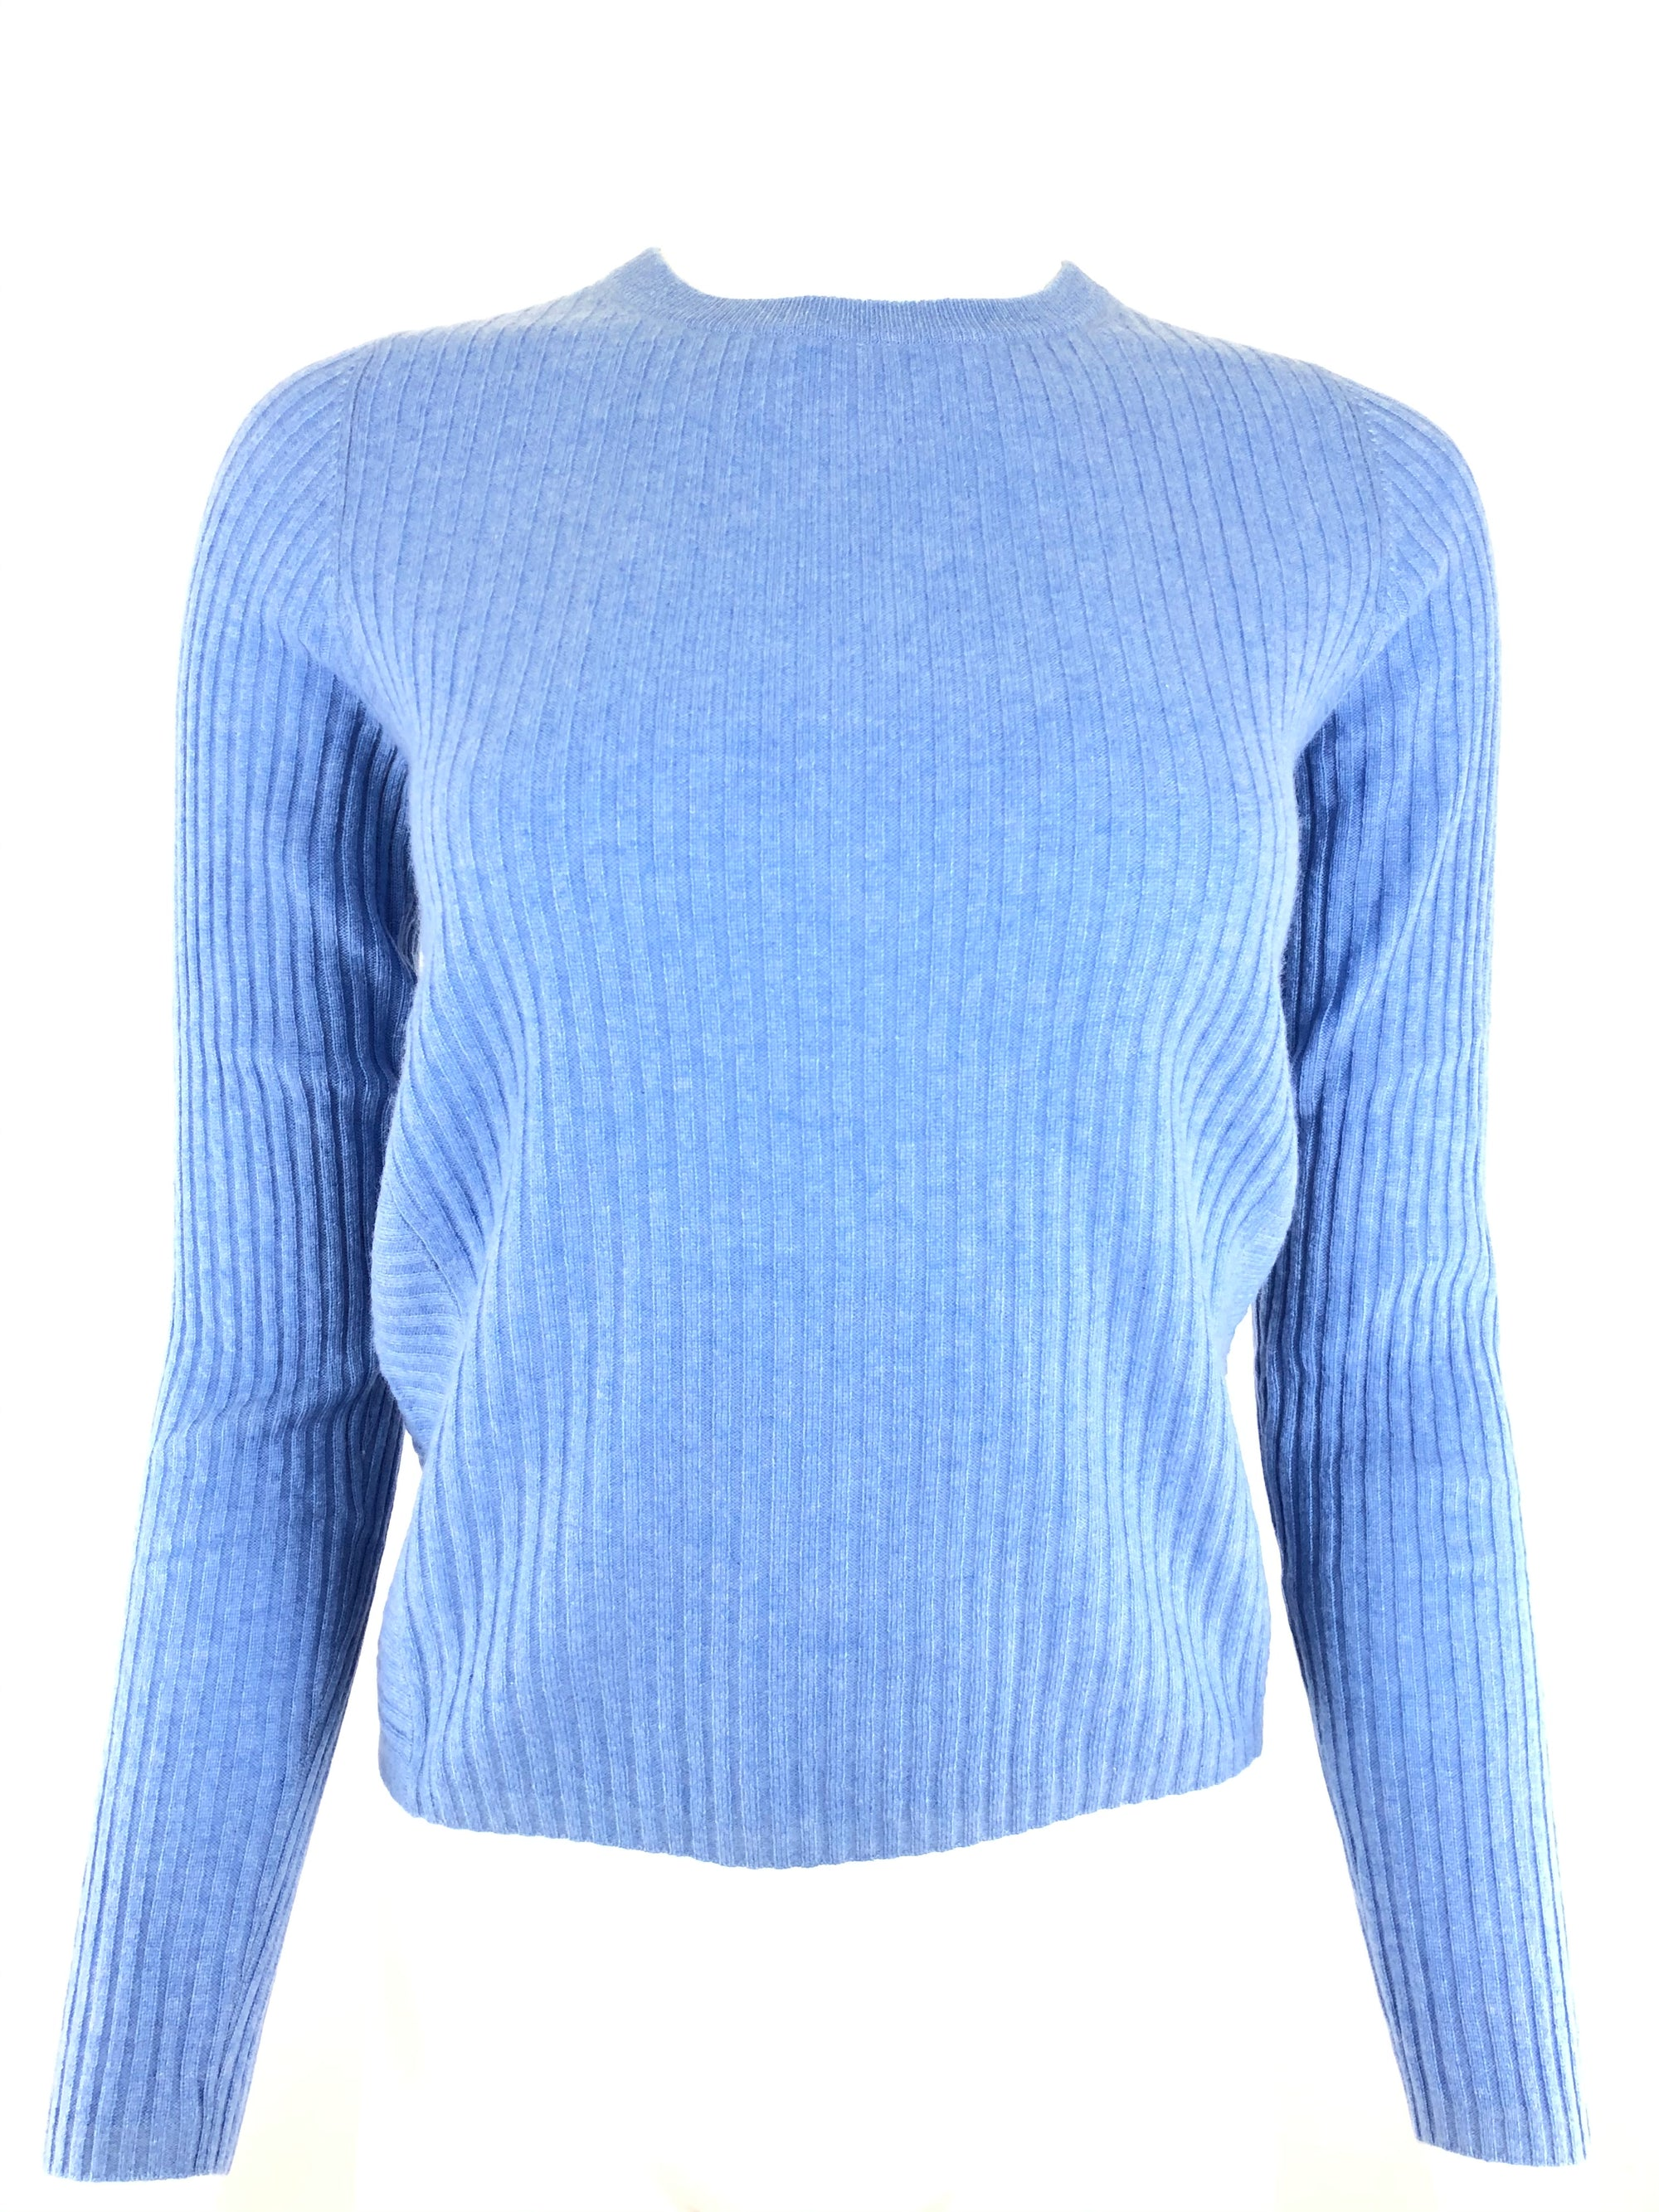 REPEAT WOMEN'S BABY CASHMERE CREW NECK SWEATER - 3 COLOR OPTIONS